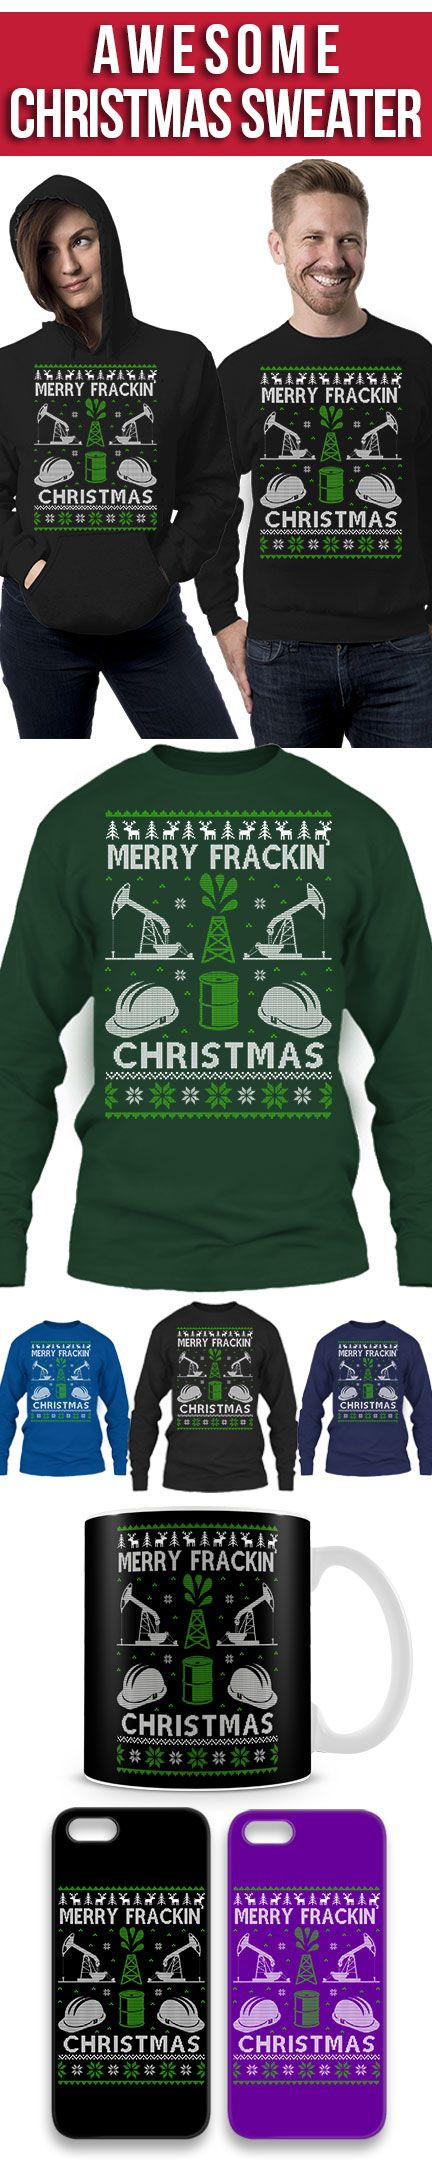 Oil Field Worker Ugly Christmas Sweater! Click The Image To Buy It Now or Tag Someone You Want To Buy This For. #oilfield